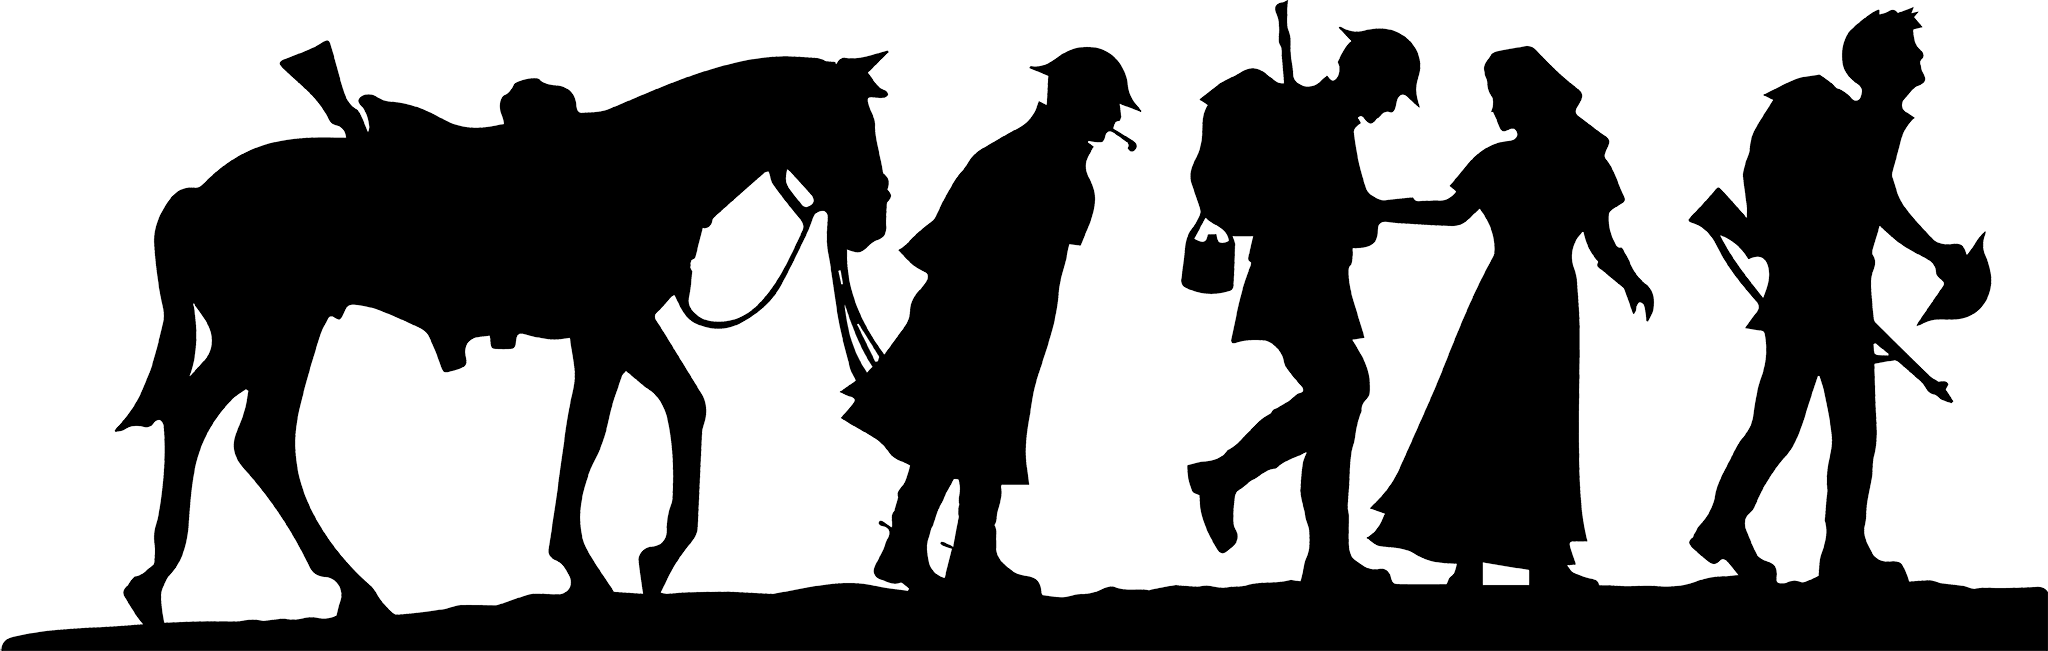 Silhouette Soldiers Design